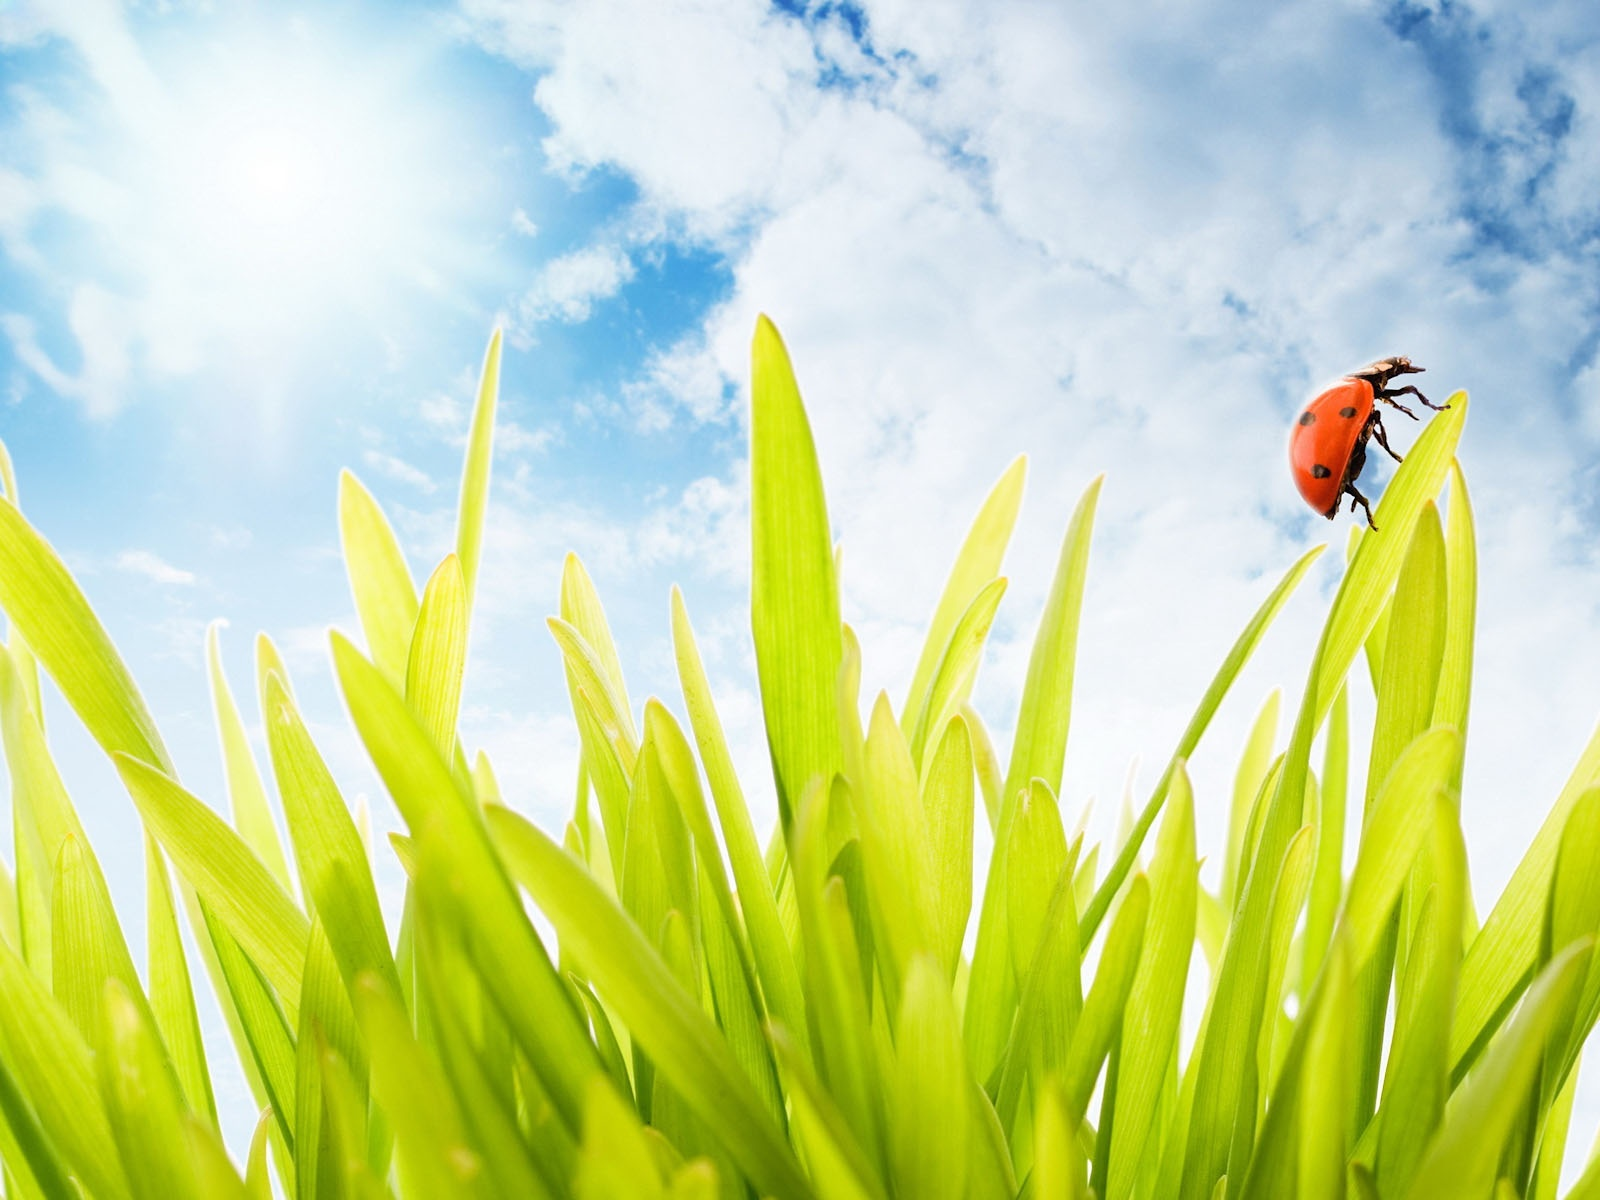 click to free download the wallpaper--Nature Landscape with Animals, a Ladybug on Grass, the Blue Sky, Combine an Incredible Scene